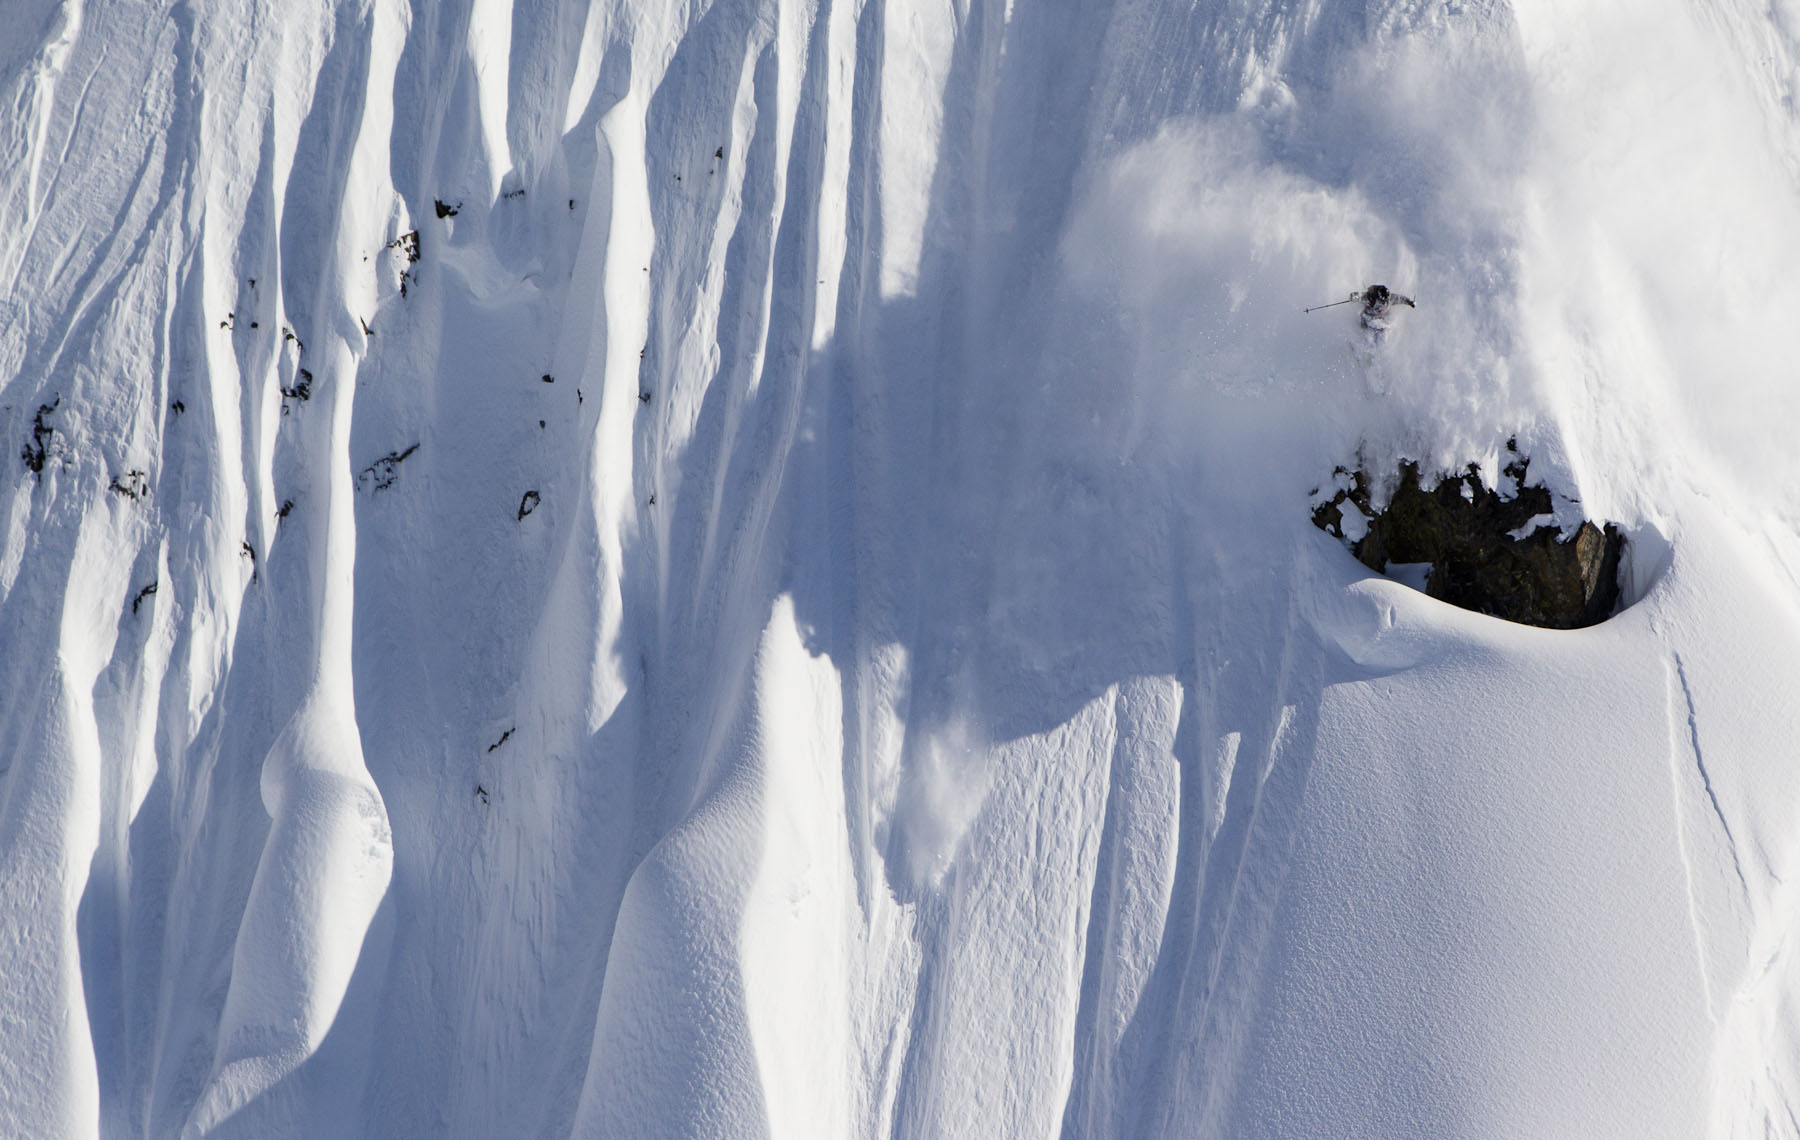 Dashiell doing it in AK in 2012. PHOTO: Mark Fisher/TGR